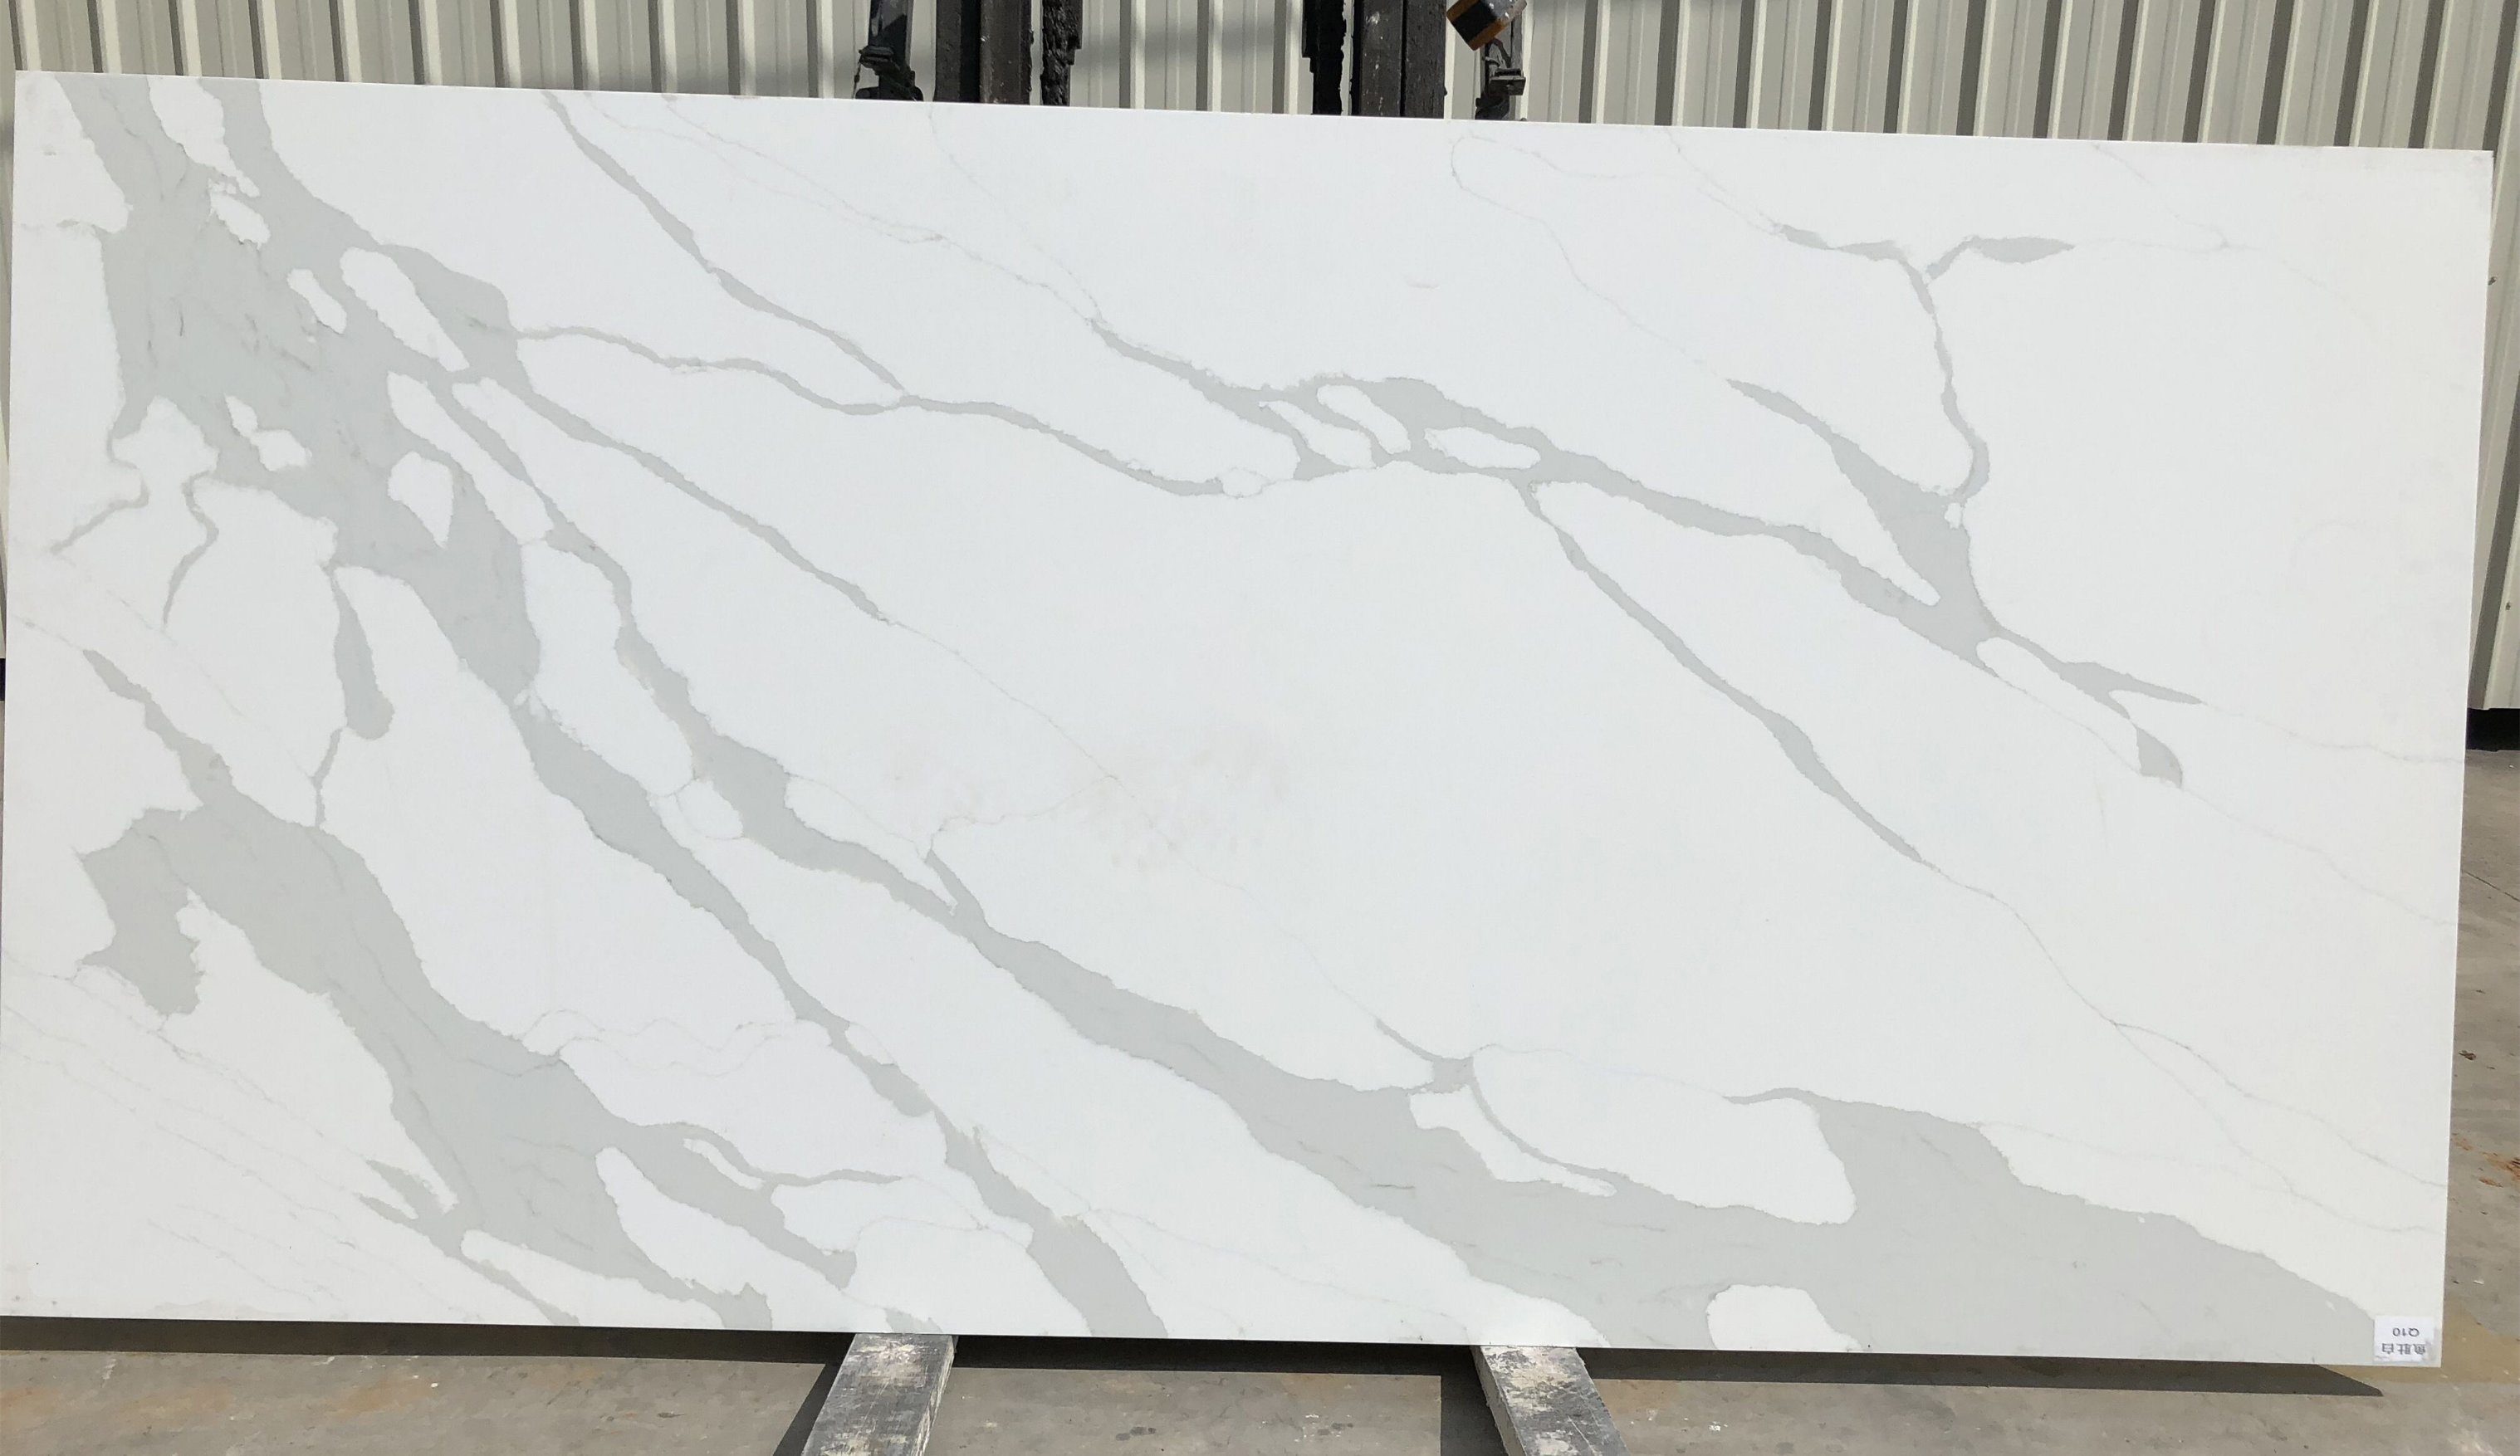 Man Made Quartz Countertops Cost Hot Item Cheap Price With High Quality Orange Man Made Quartz Stone For Countertops